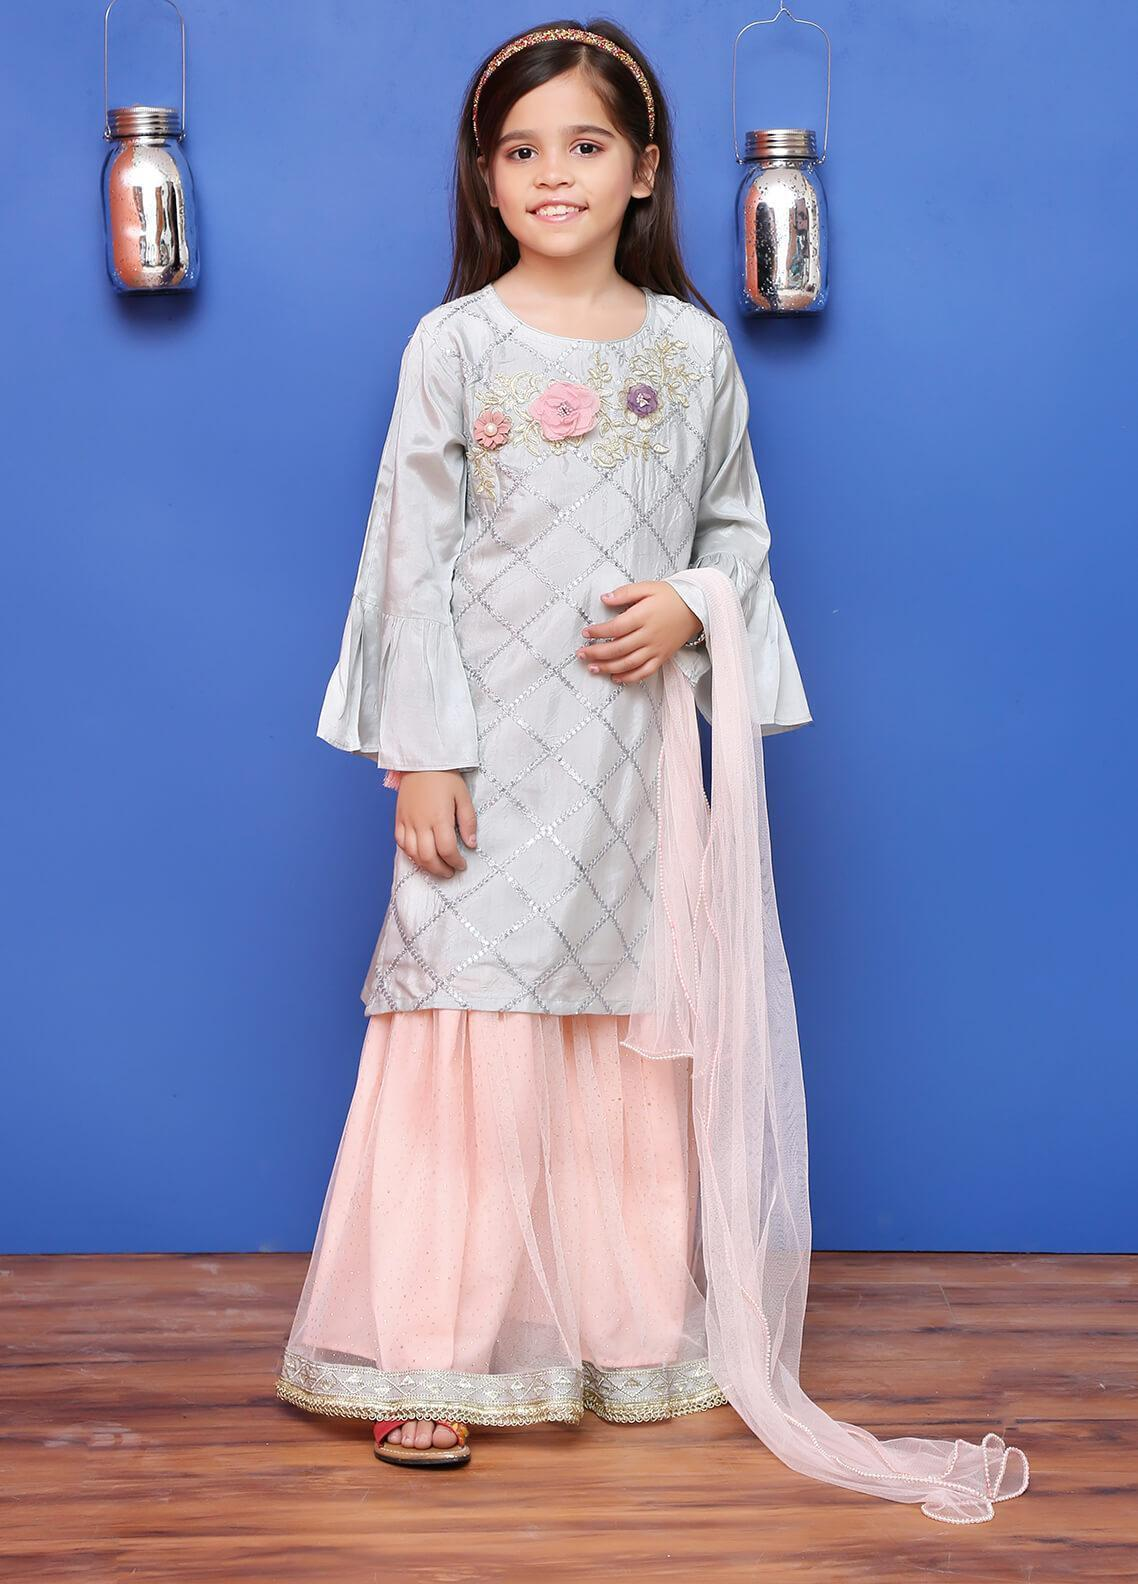 Ochre Chiffon Formal 3 Piece Suit for Girls - OFW 169 Steel Grey